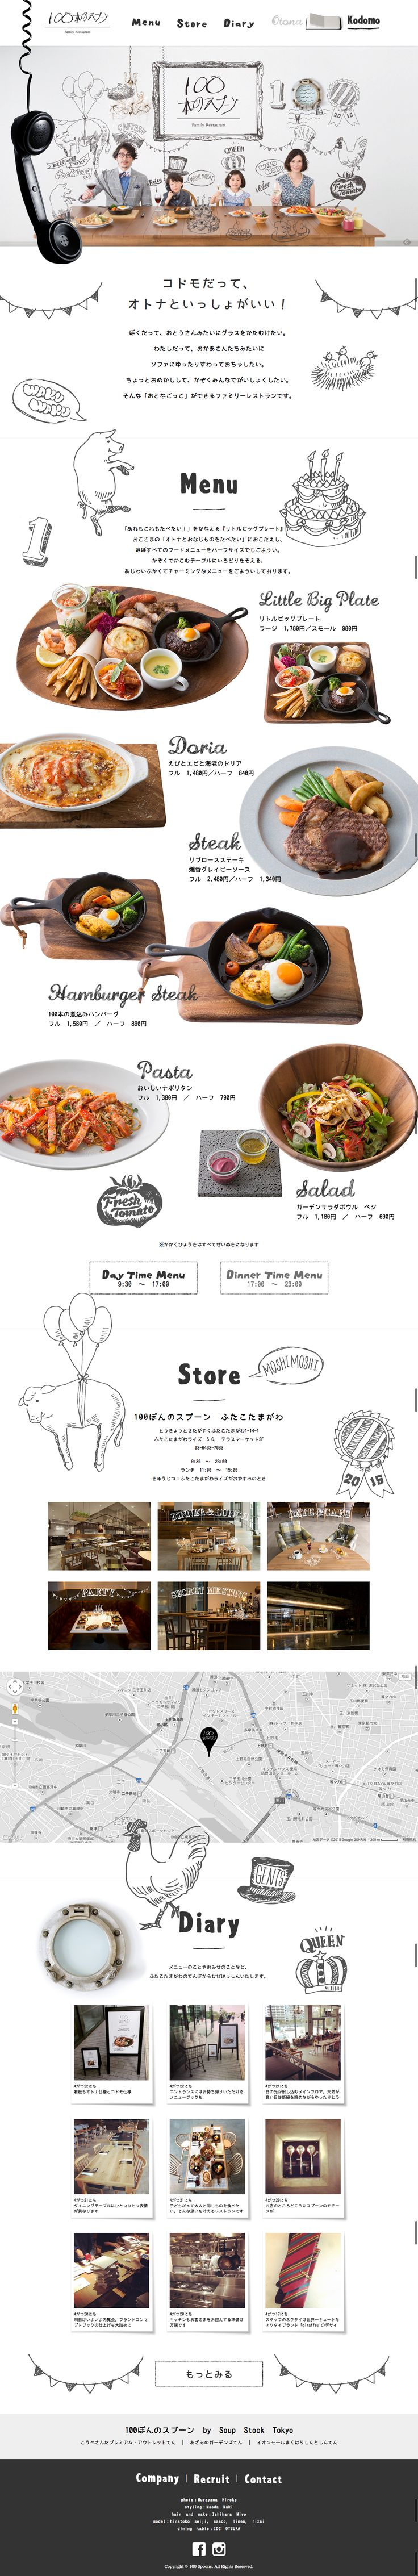 Foody web design